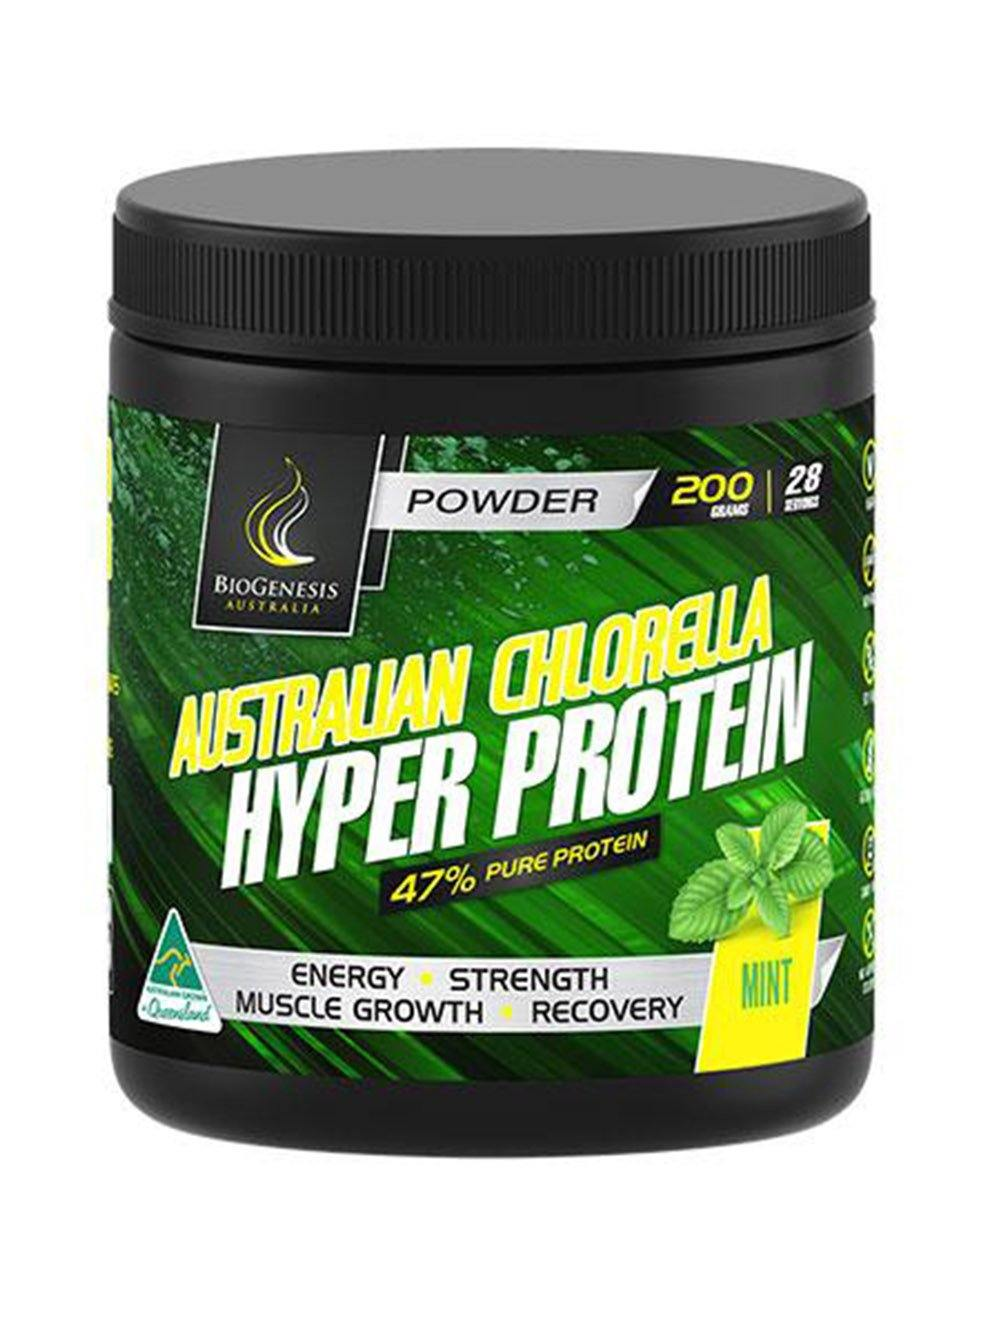 Vegan Protein Powder Mint Flavor